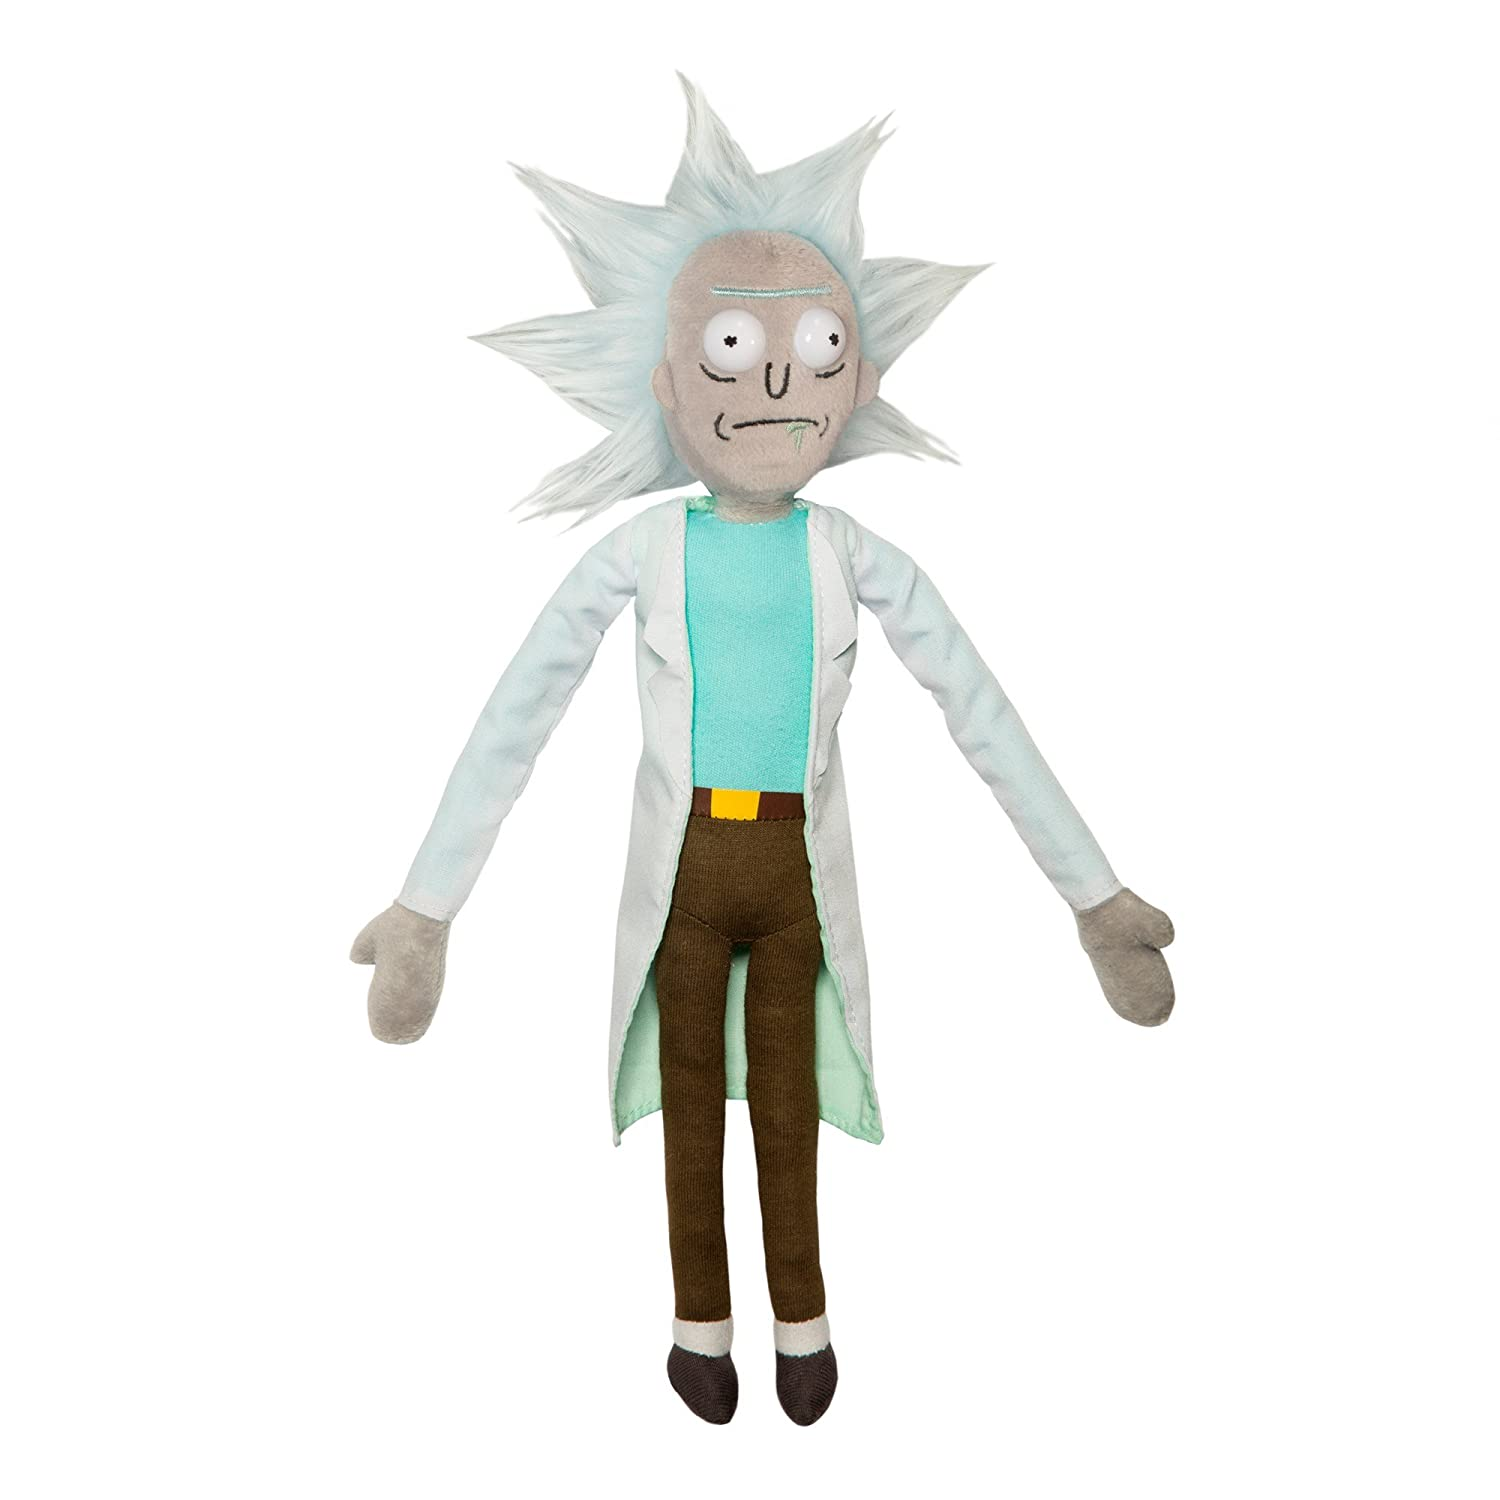 Rick Plush Stuffed Doll by JINX